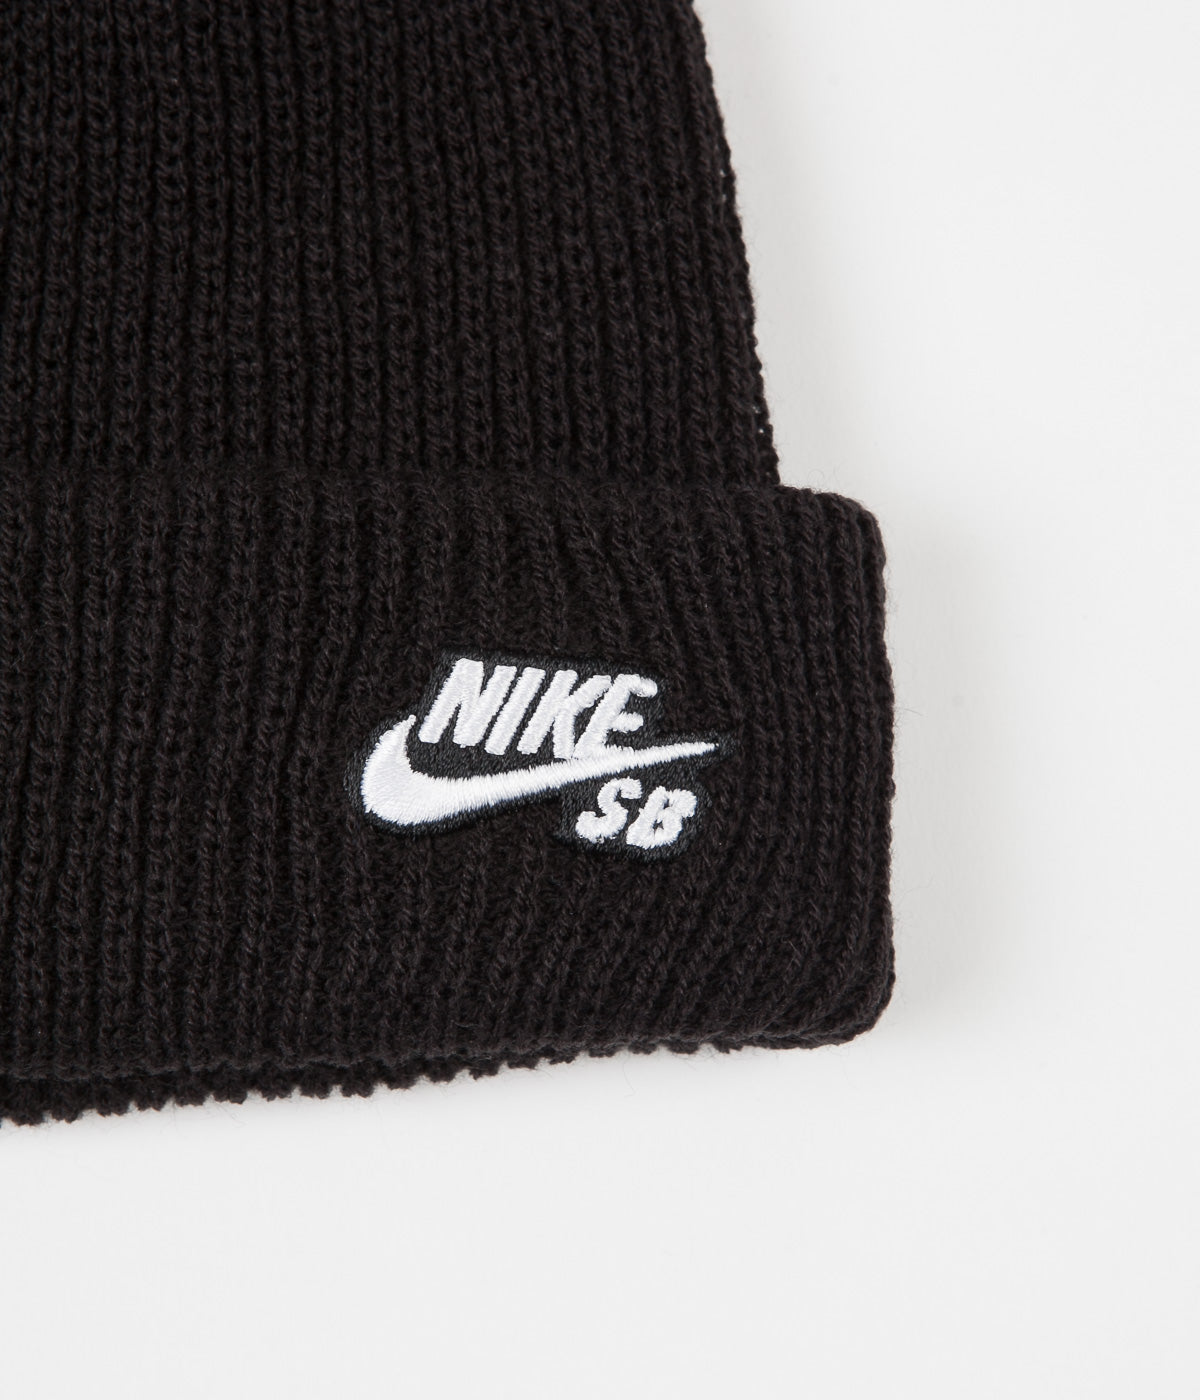 Nike SB Fisherman Beanie - Black / White